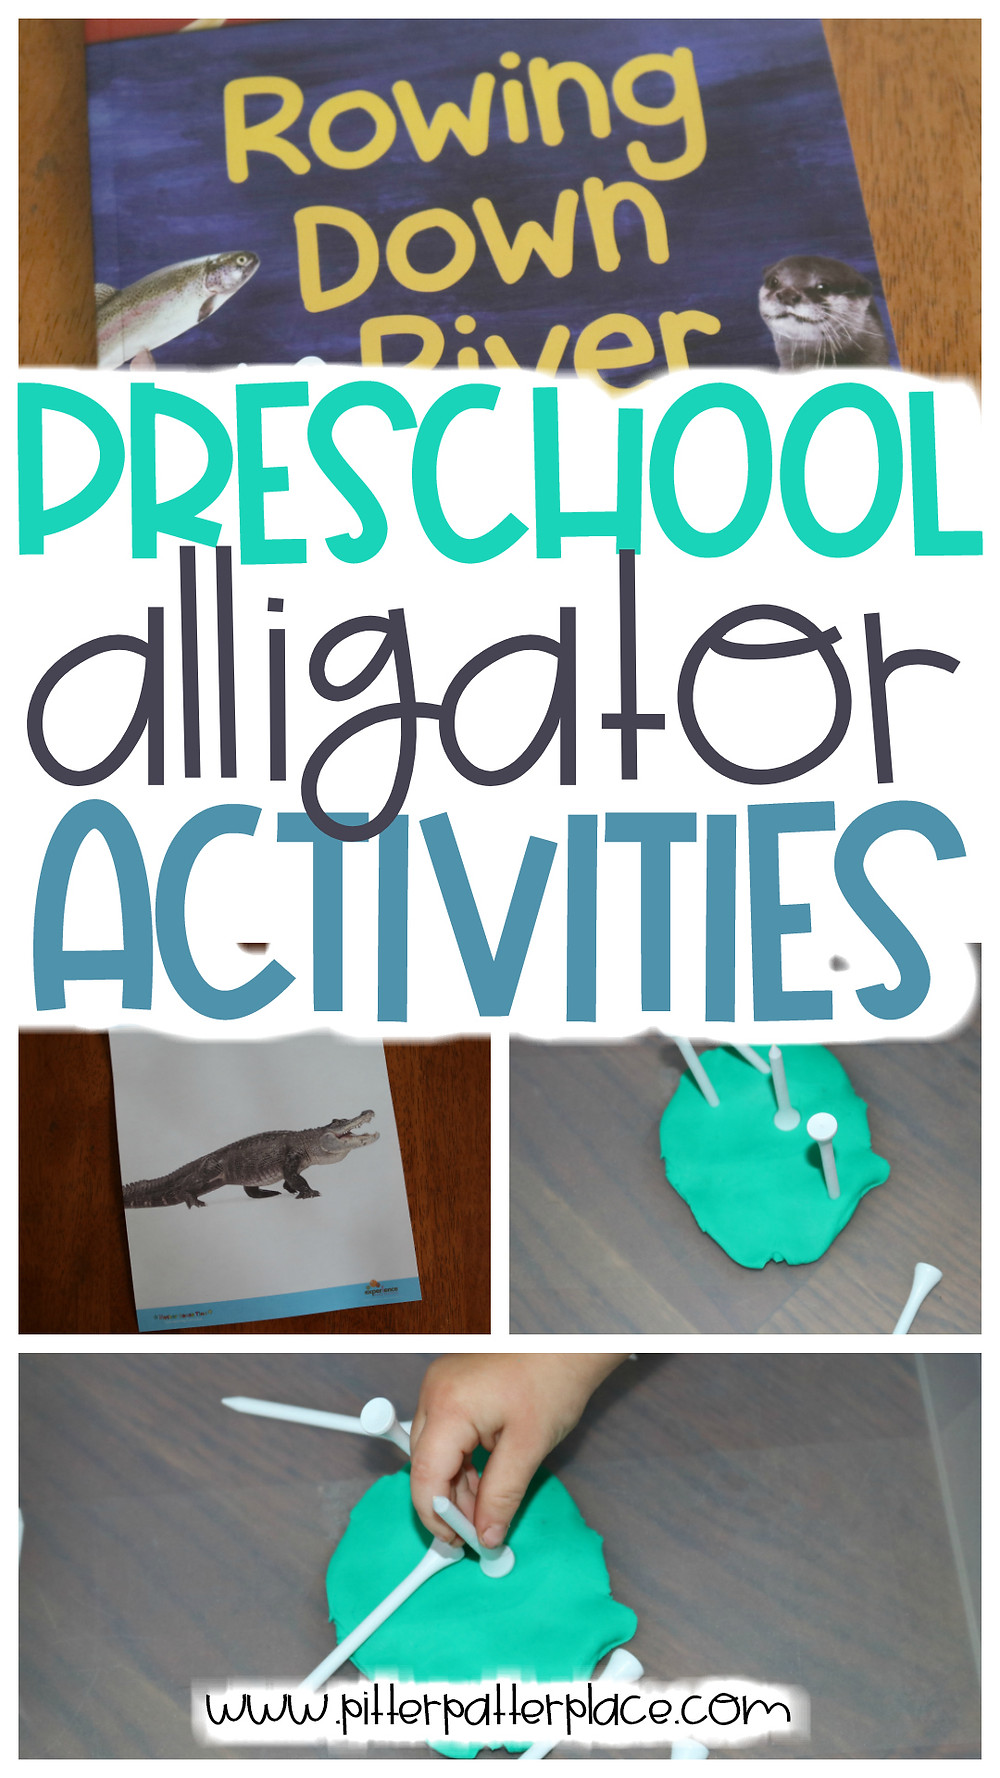 collage of alligator activities with text: Preschool Alligator Activities